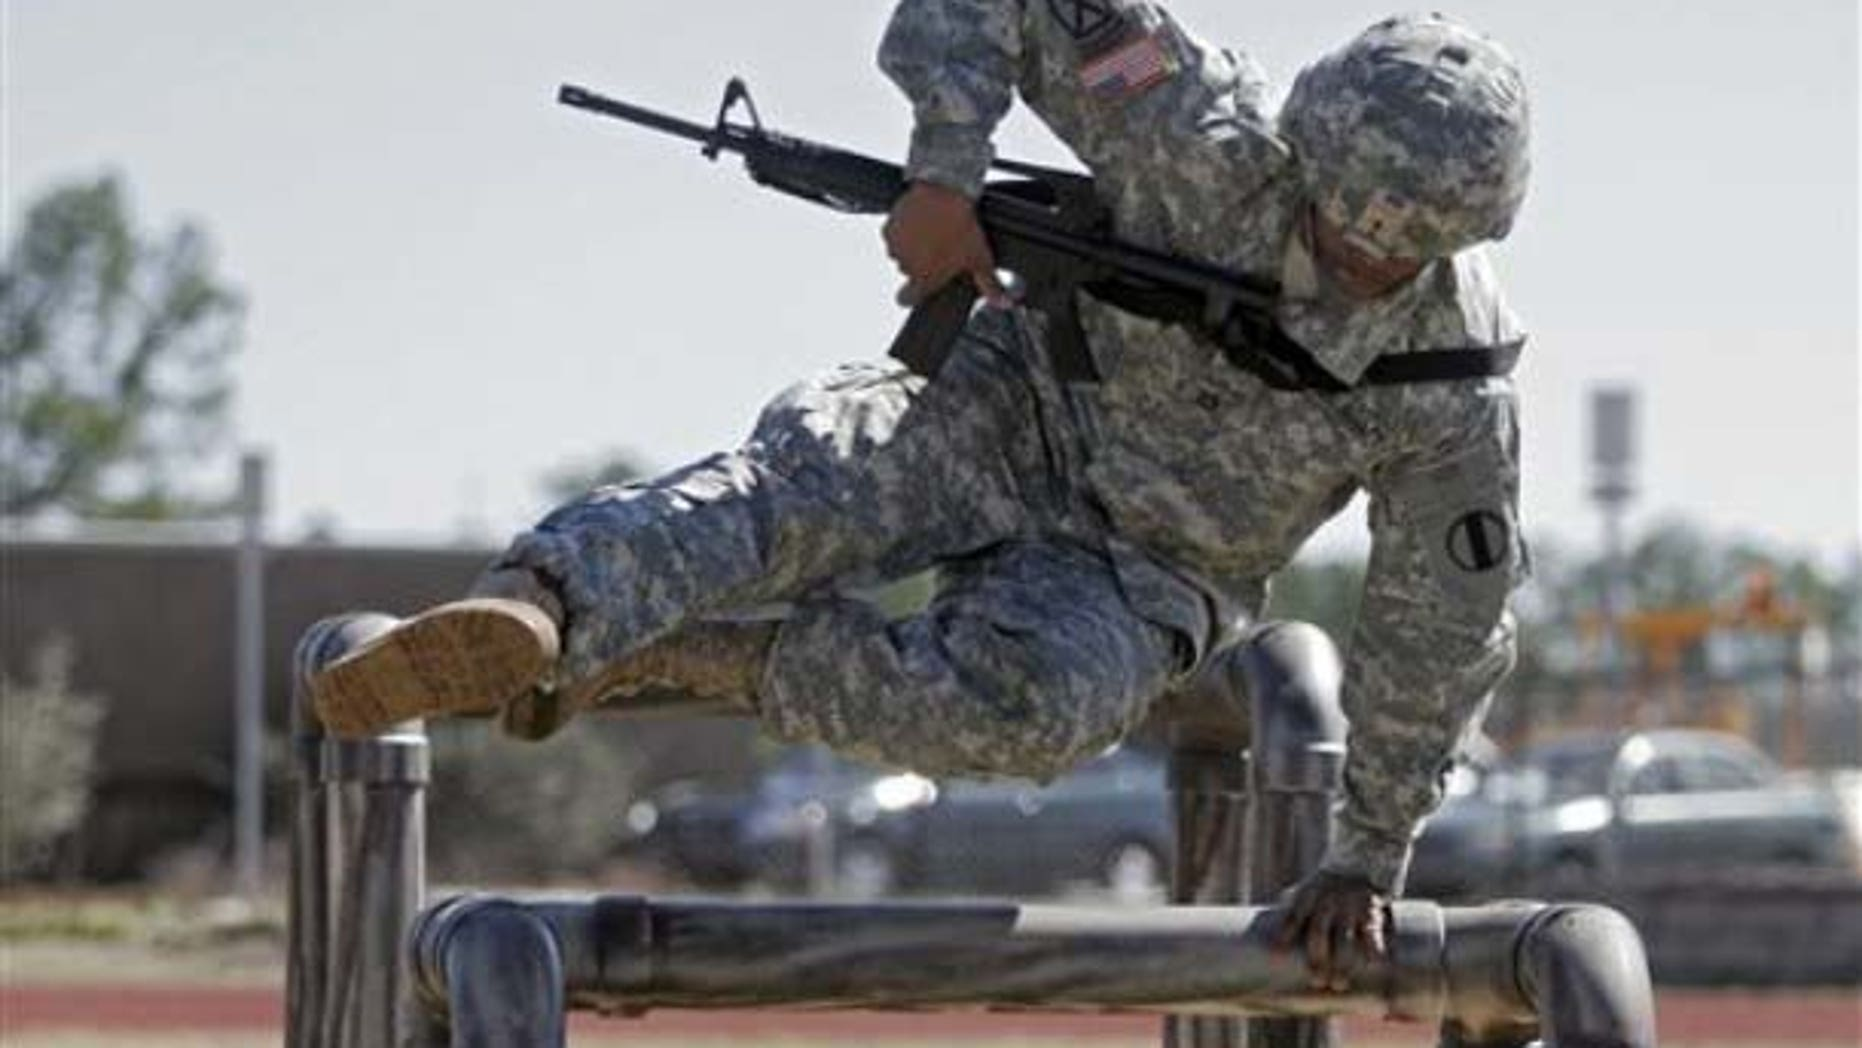 A soldier participating in physical training.